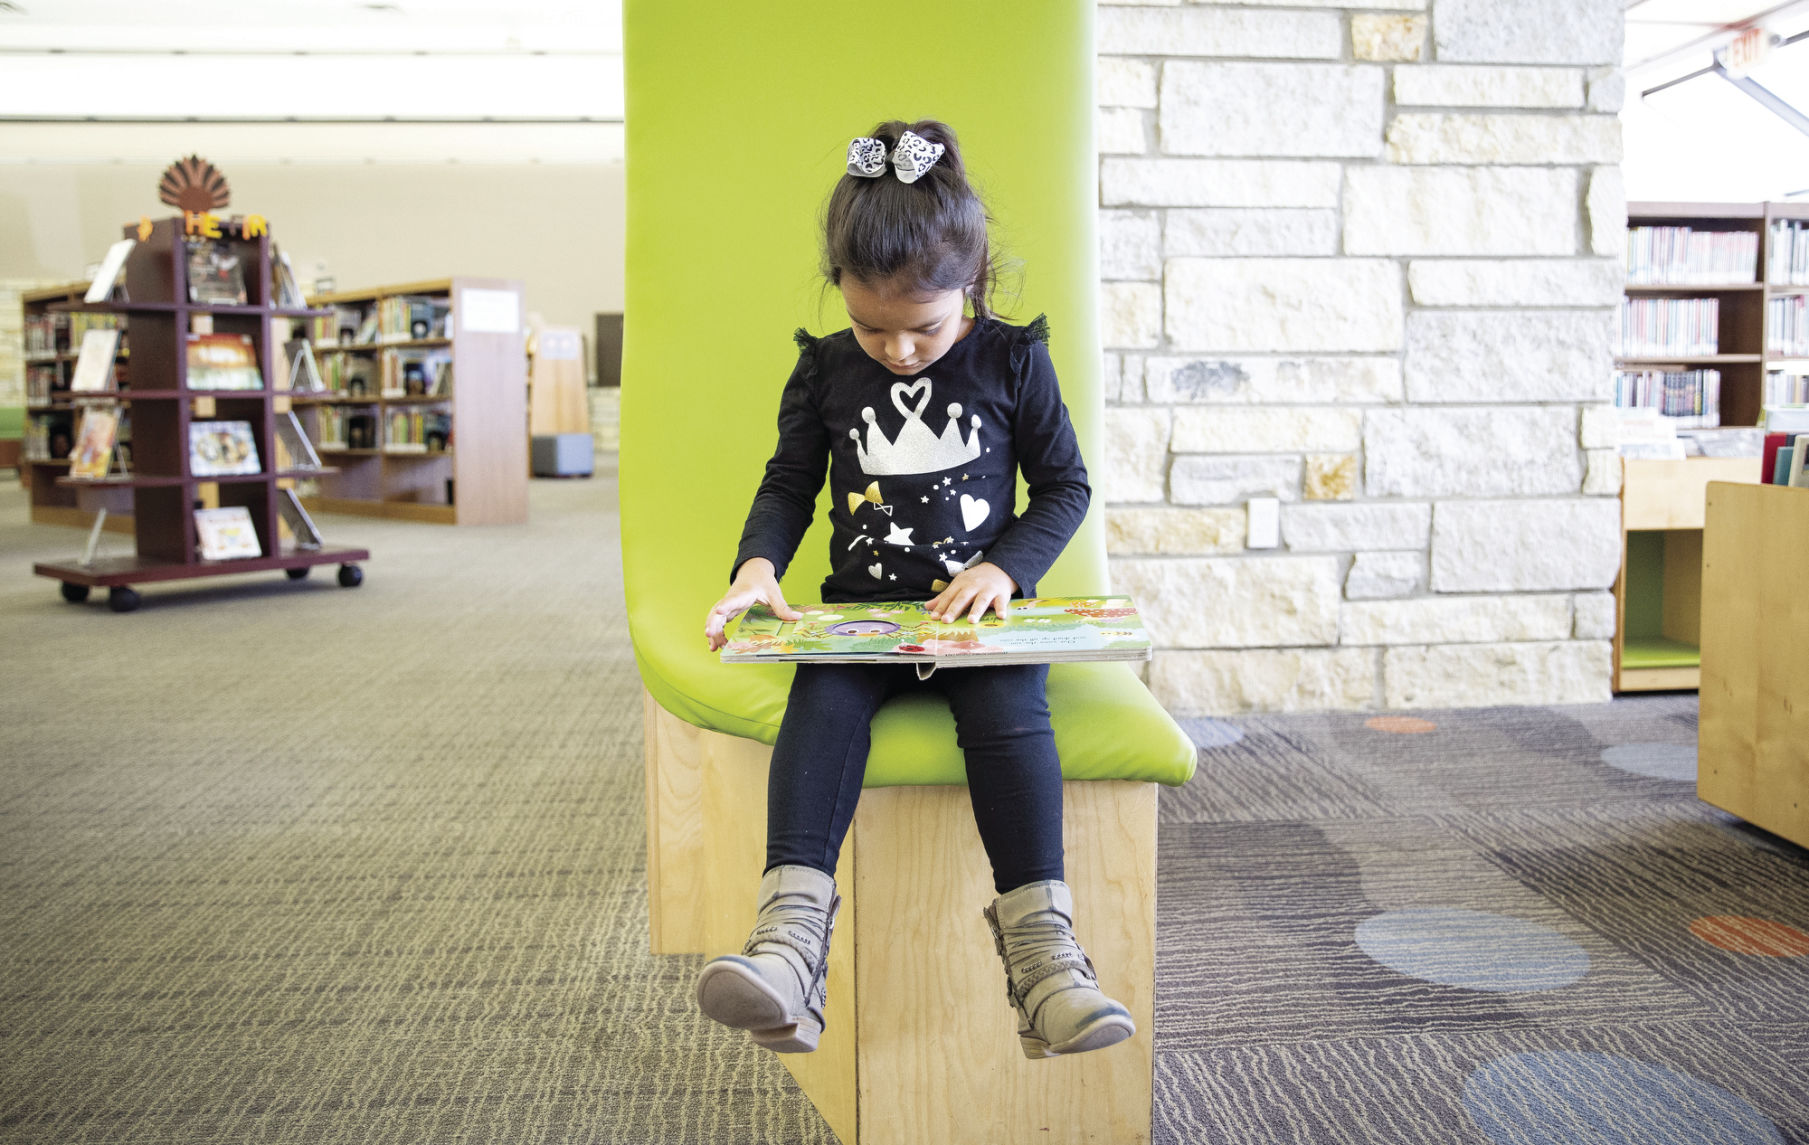 Many children would have lost access to the library if the city council had approved a proposal to require ID for patrons.